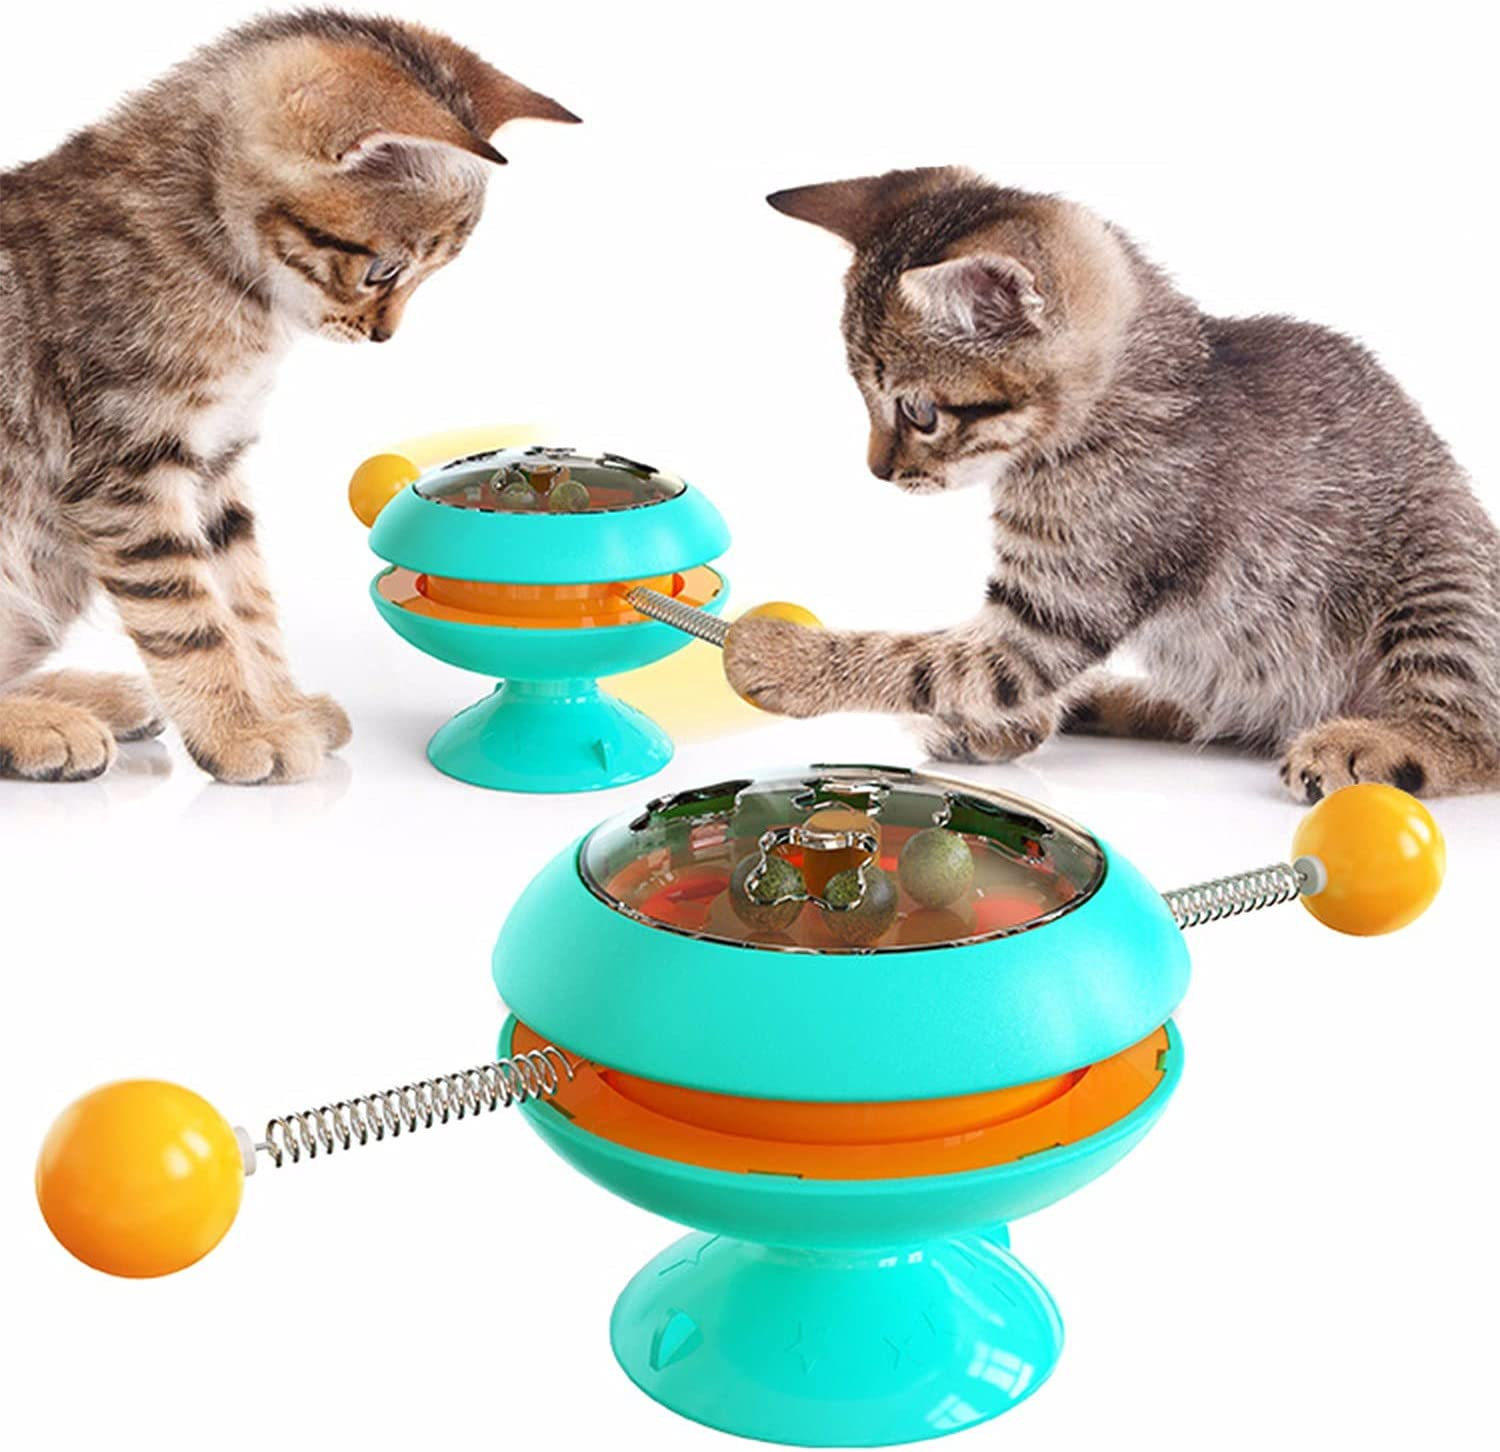 TONG Cat Toys Catnip Balls Turntable Ranking Large discharge sale TOP17 Toy Interactive